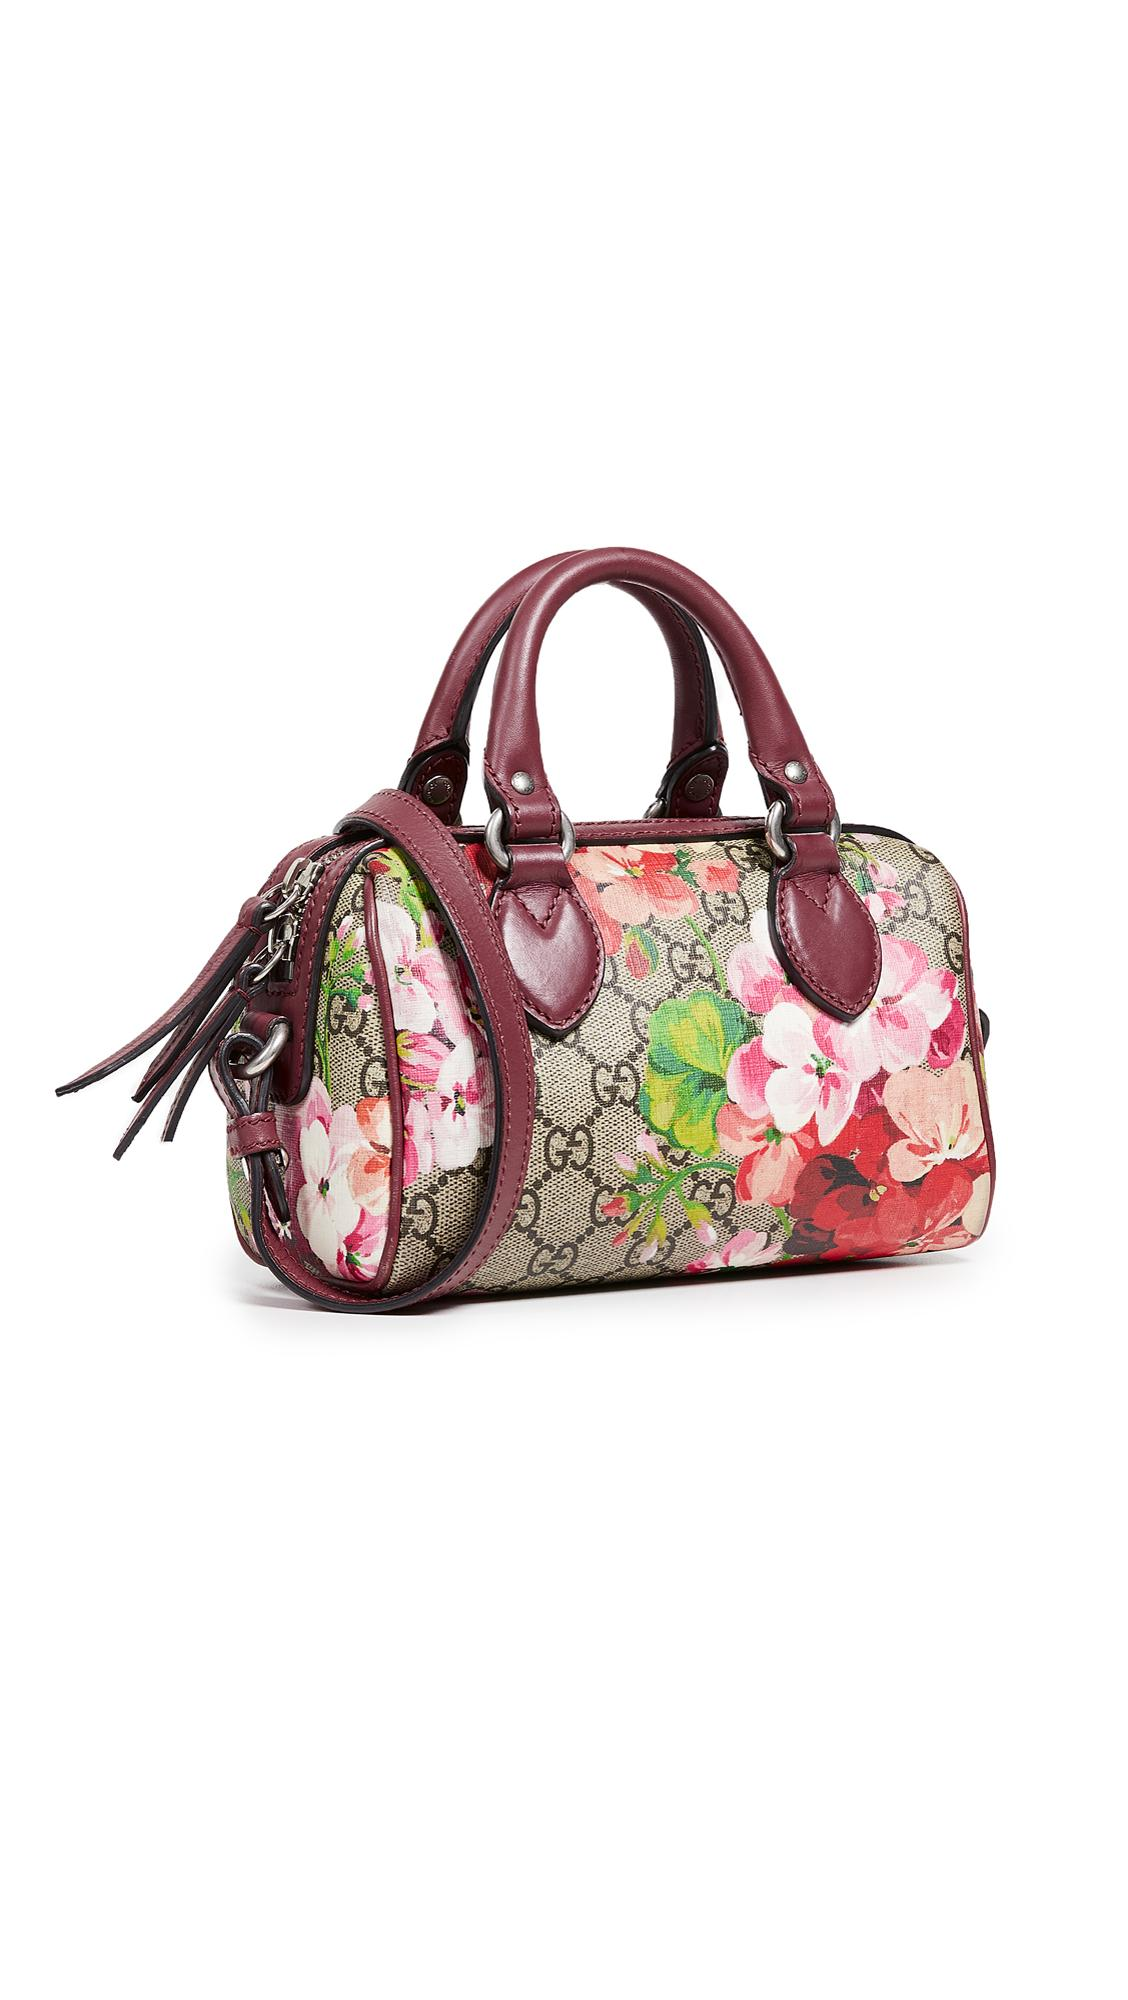 21a4c4183c44 What Goes Around Comes Around Gucci Pink Gg Blooms Boston Mini Bag ...